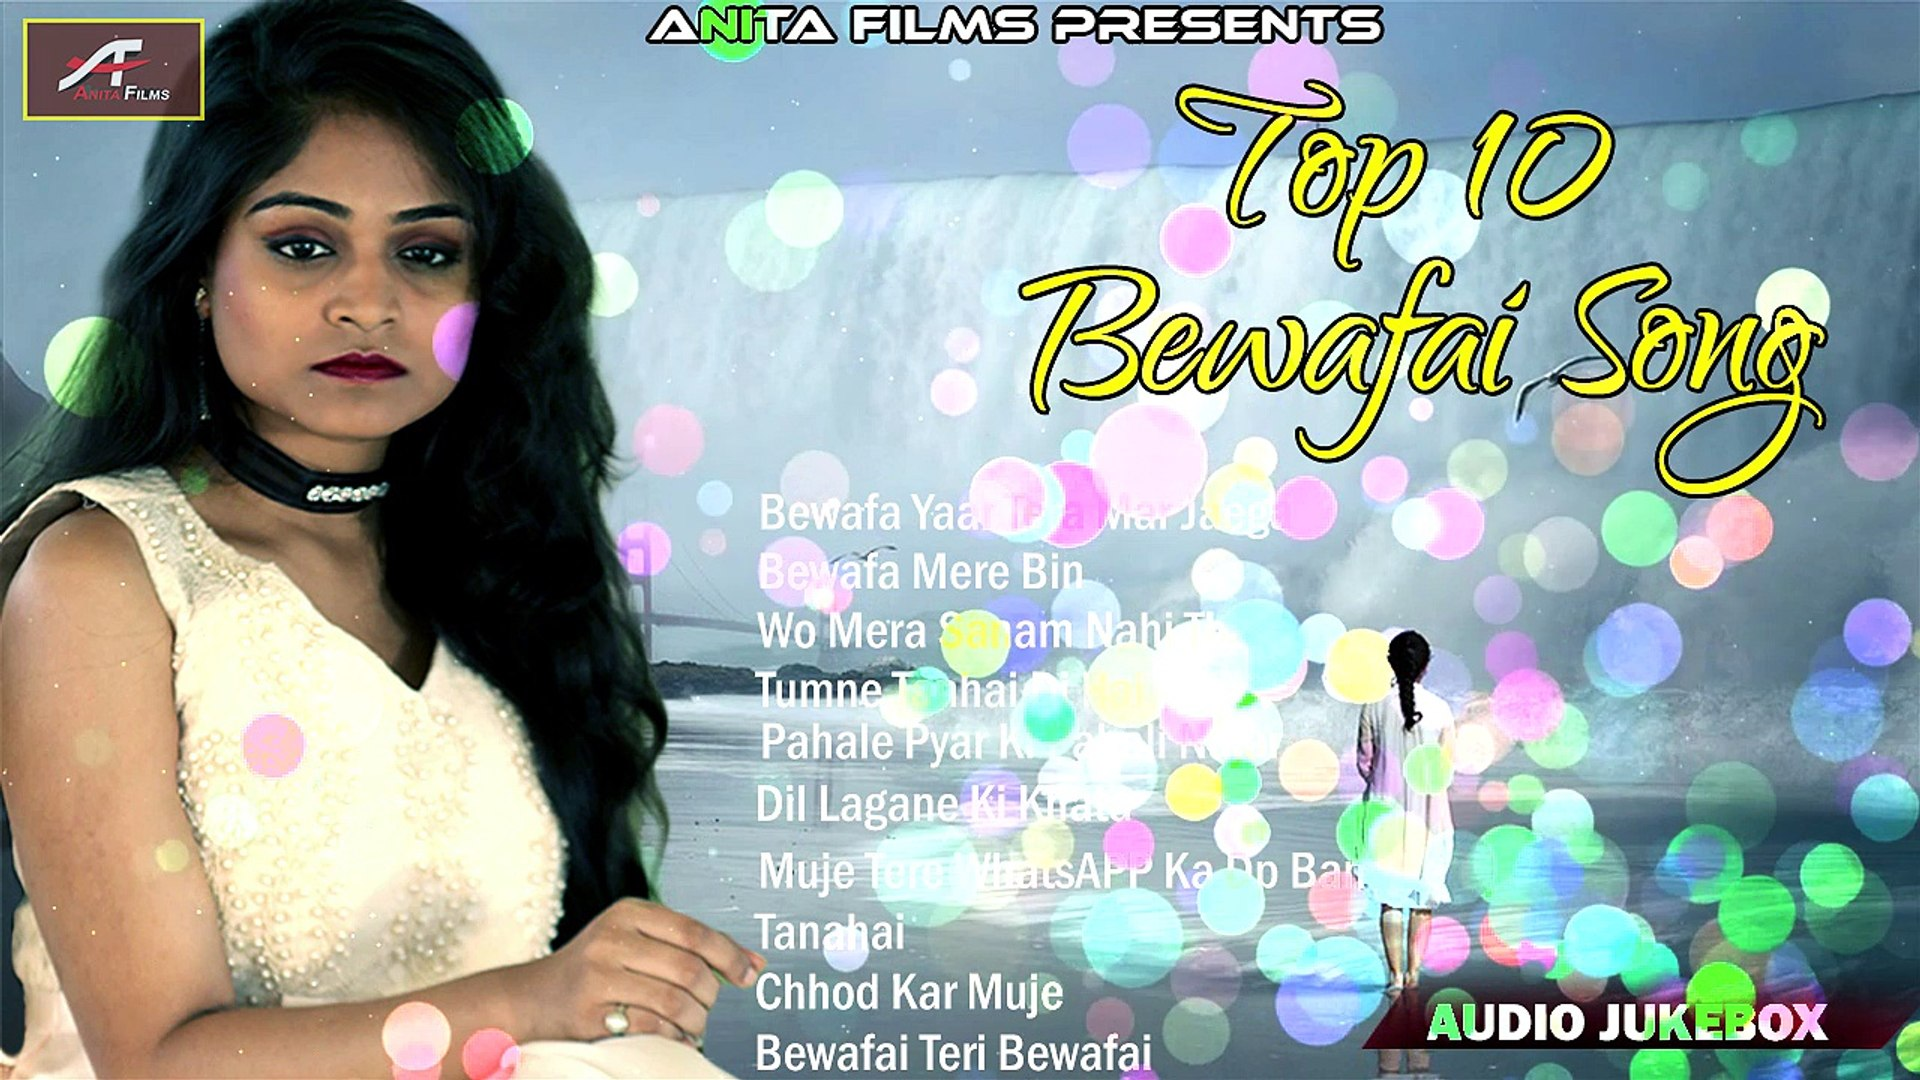 PYAR MOHABBAT BEWAFA के सबसे दर्द भरे गीत | TOP 10 Bewafai Song | FULL Mp3  | Audio Jukebox | Hindi Sad Songs | Bollywood Love Songs | Best Romantic  Songs Callection | Anita Films | Dard Bhare Nagame |